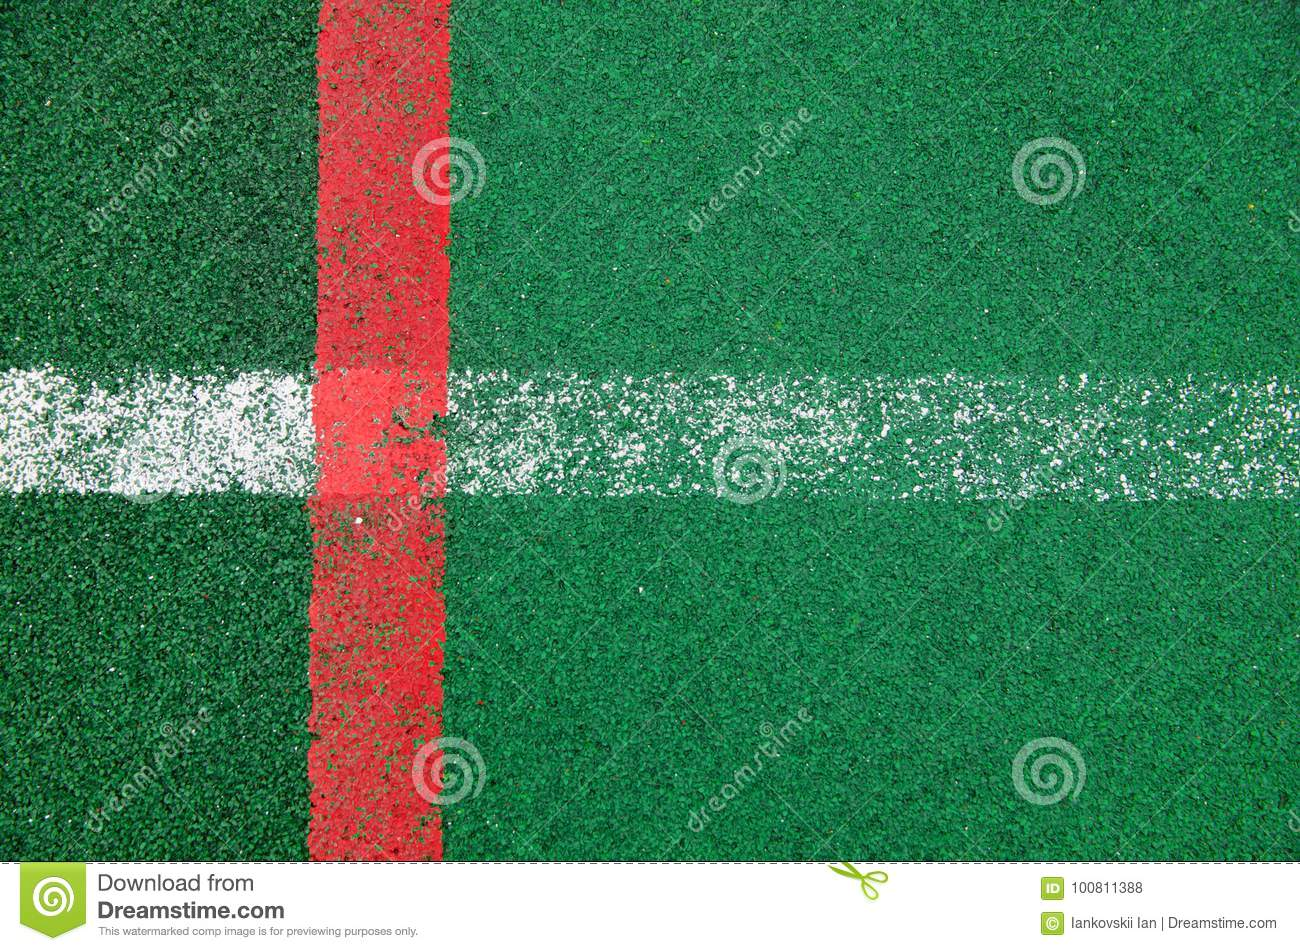 Rubber covering for sports grounds 82